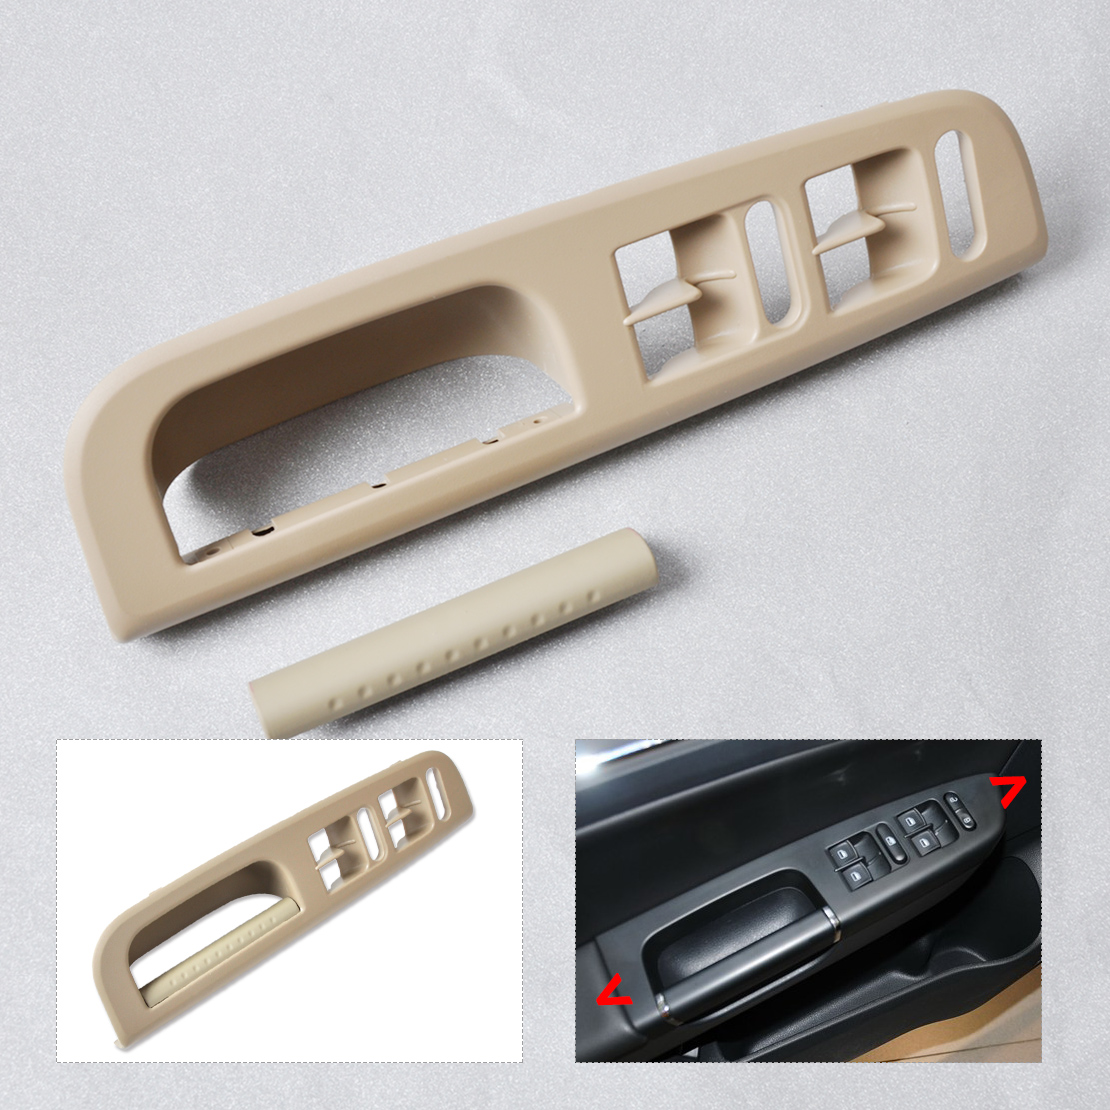 Beige Door Window Switch Control Panel Handle Trim For Vw Passat Golf Jetta Mk4 Ebay